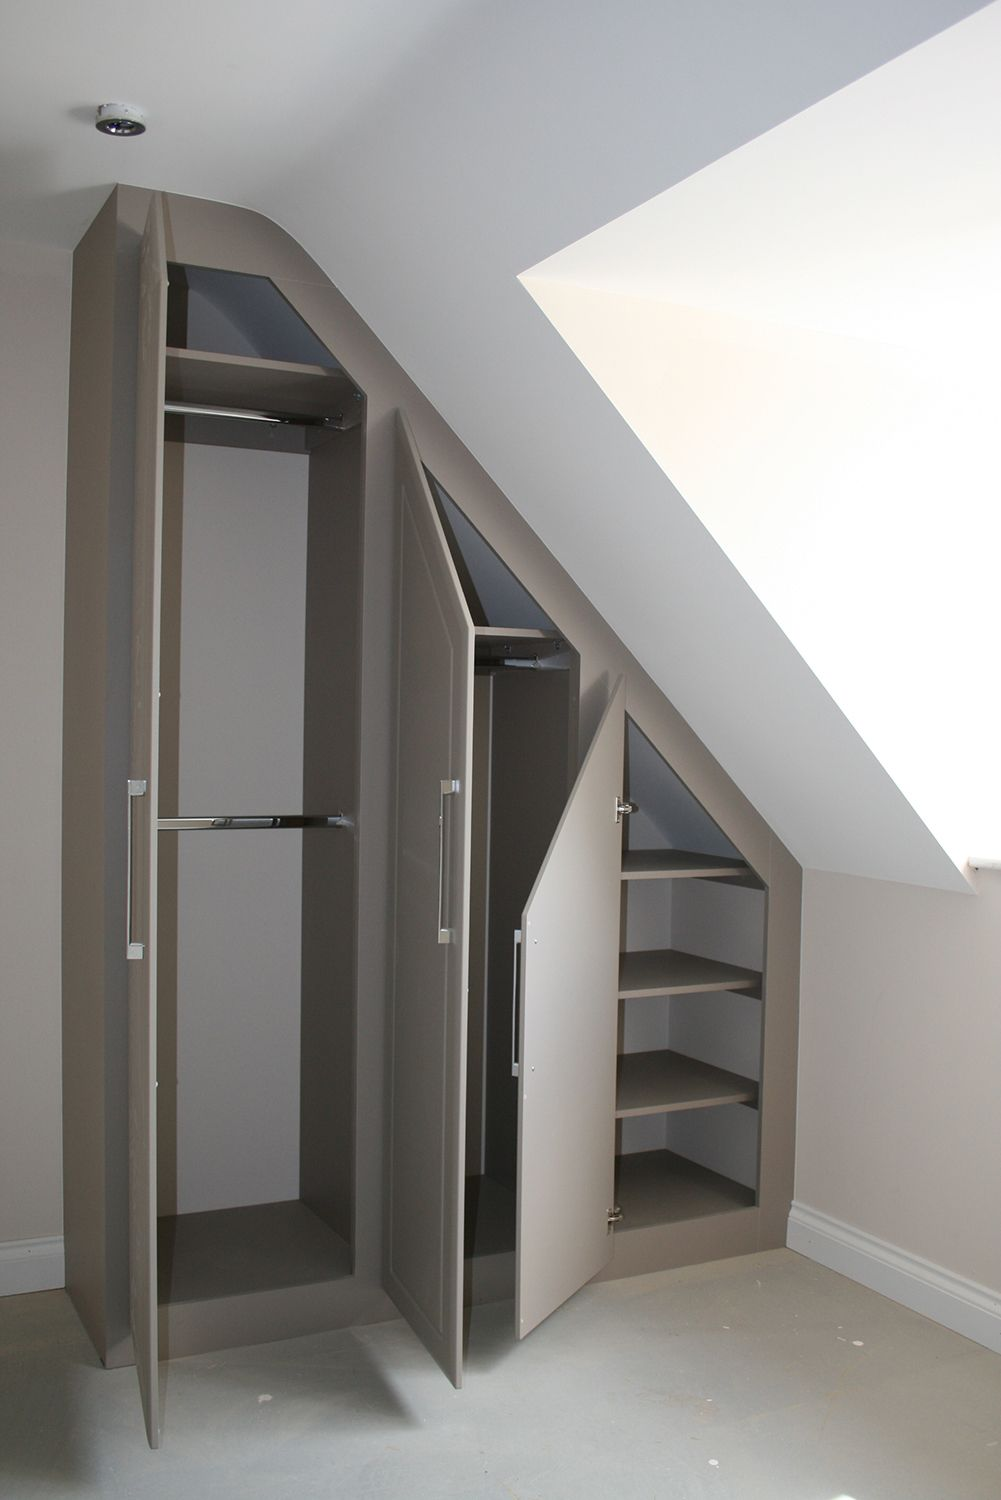 Fitted Furniture For Loft Conversions and Angled Ceilings - Furniture By Design #loftconversions